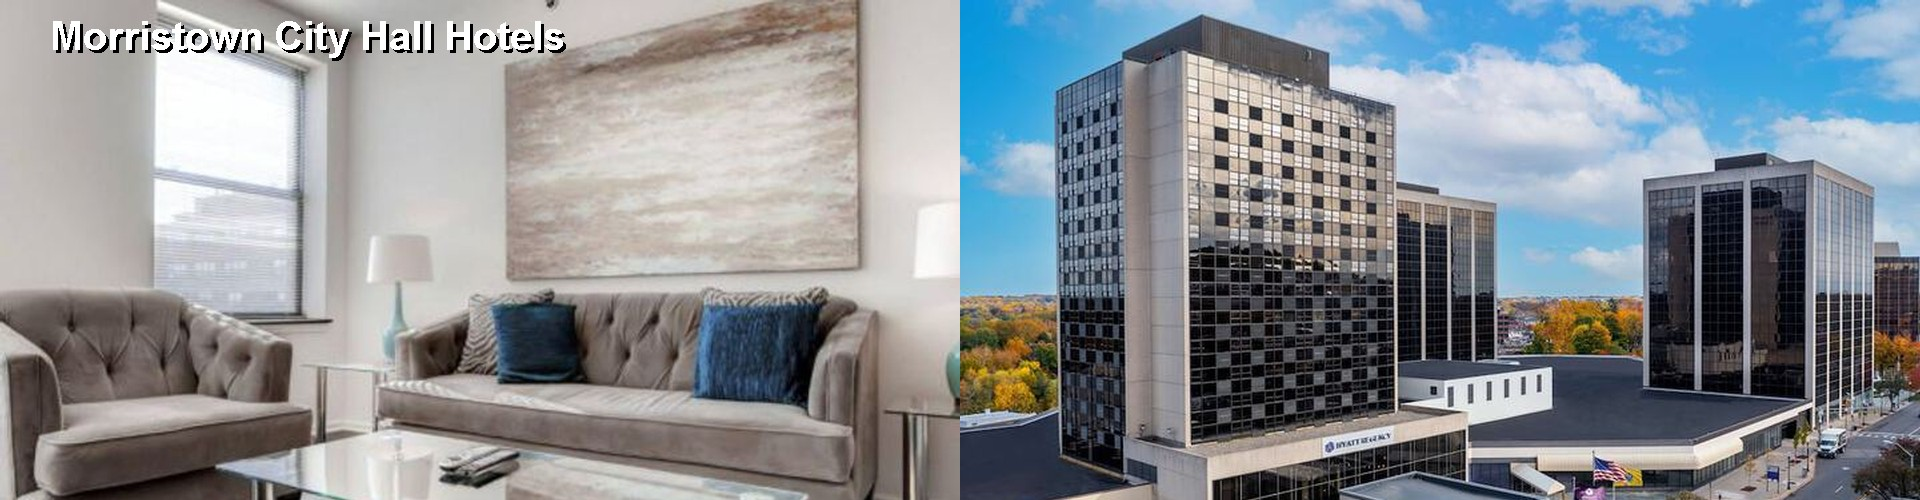 5 Best Hotels near Morristown City Hall